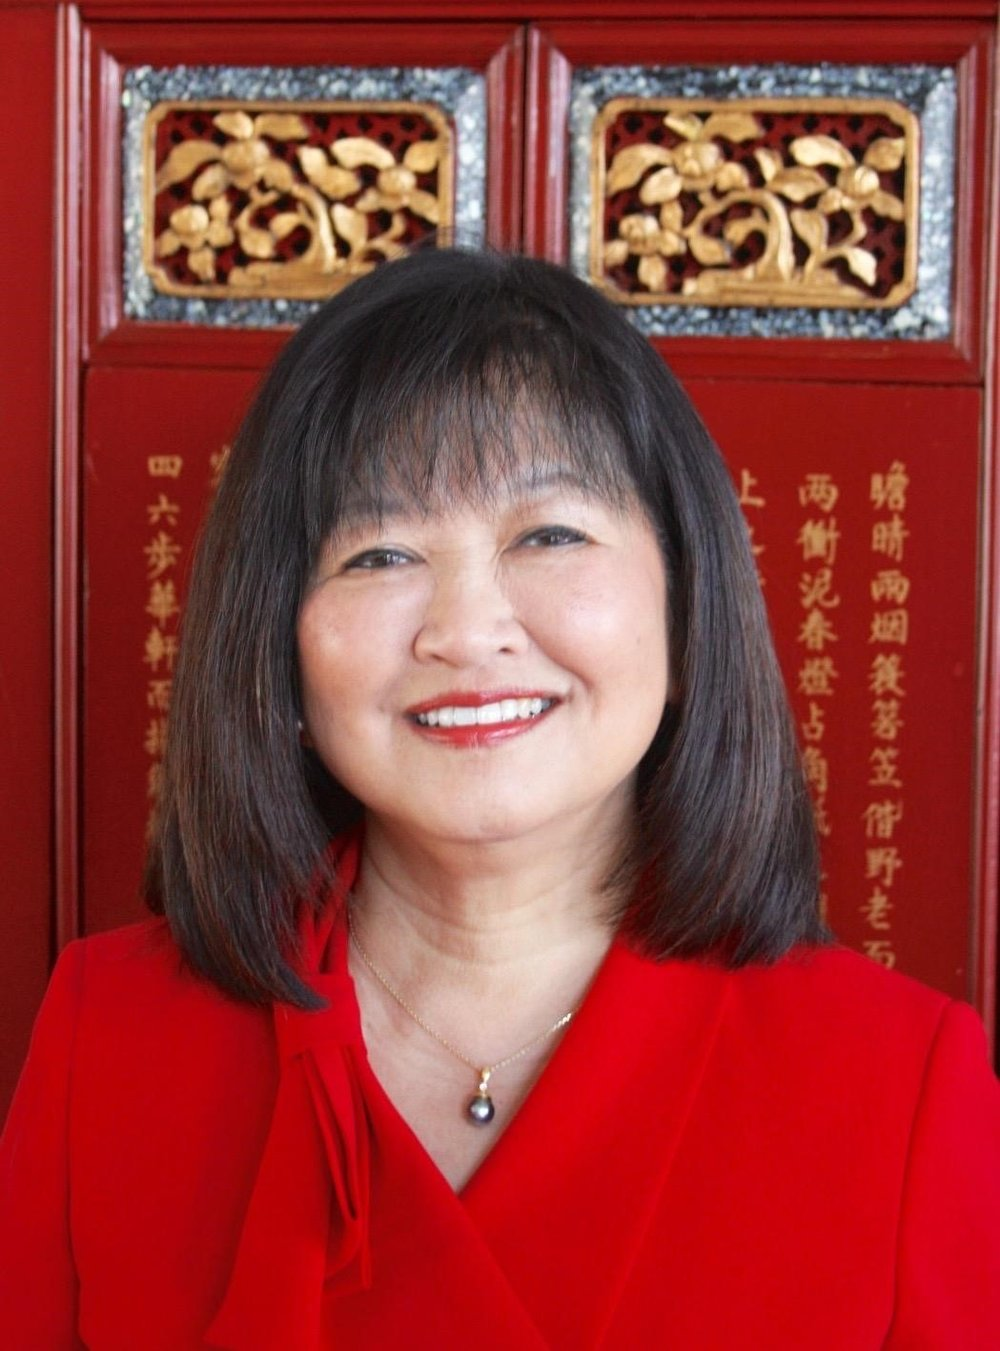 2018 SBCSC Scholarship Award Banquet Keynote Speaker: Ms. Suzanne (Sue) Chan